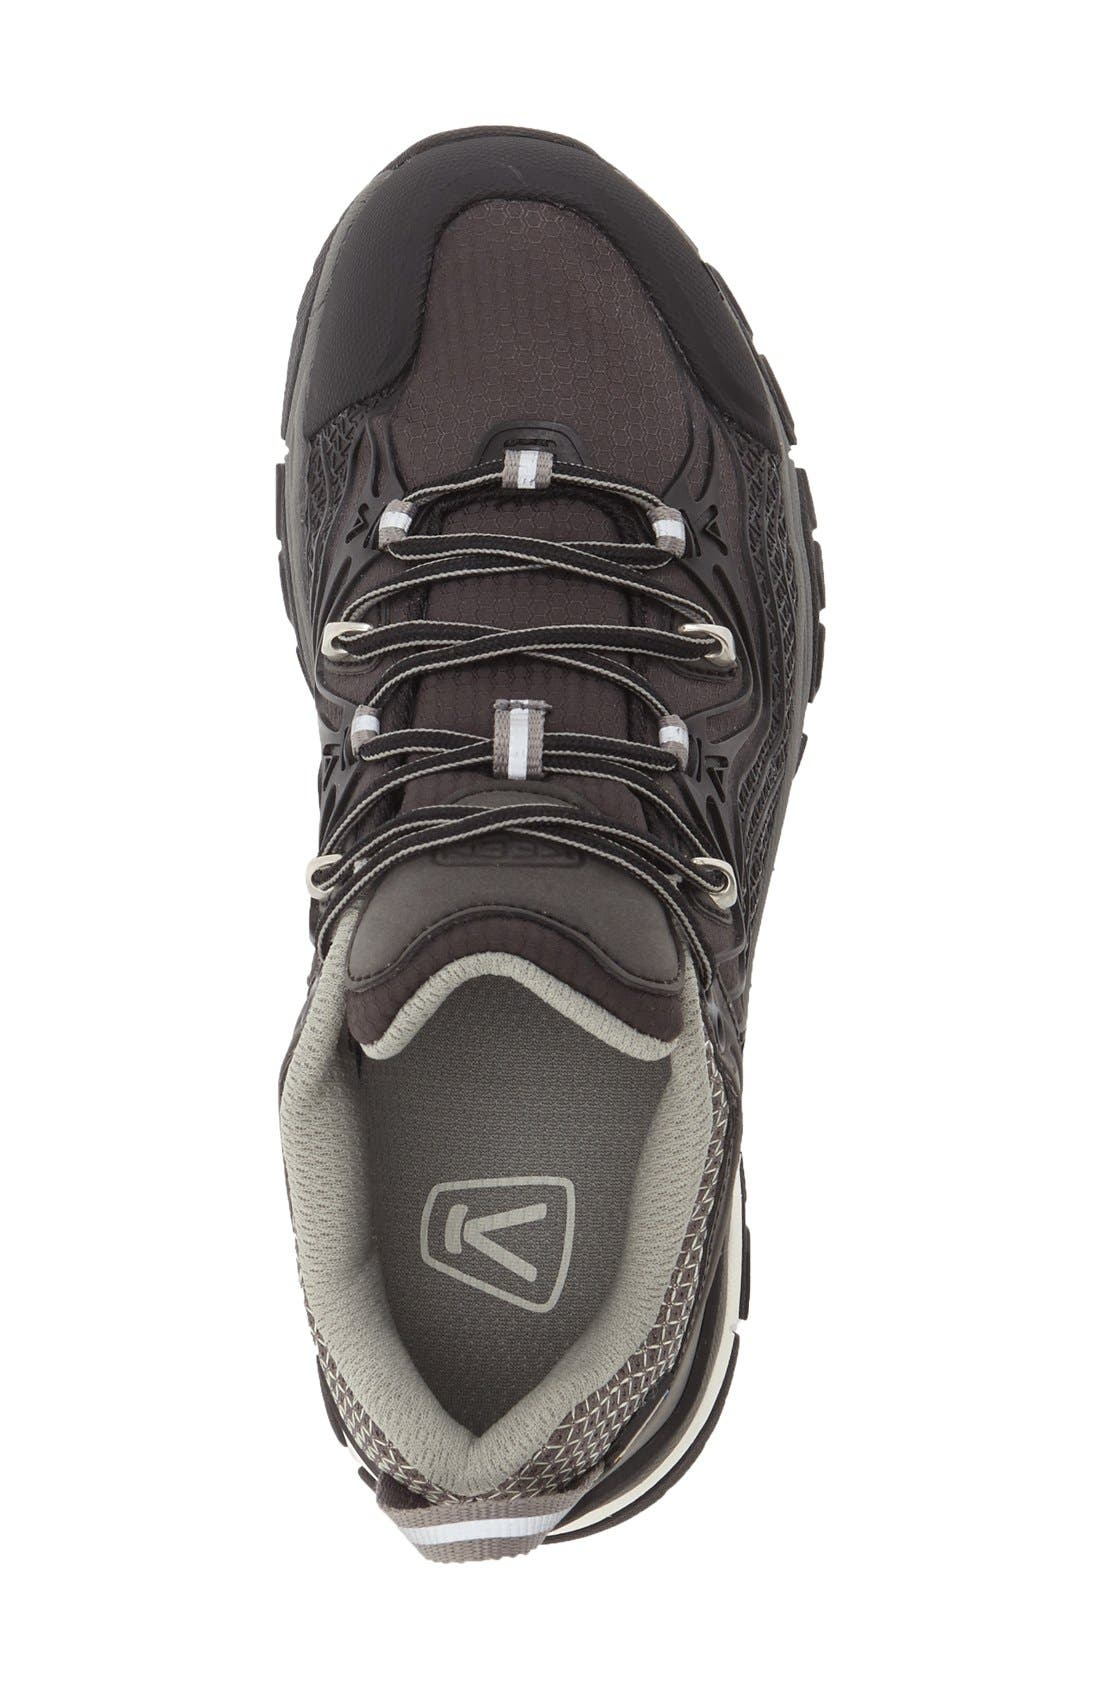 'Aphlex' Waterproof Hiking Boot,                             Alternate thumbnail 4, color,                             002